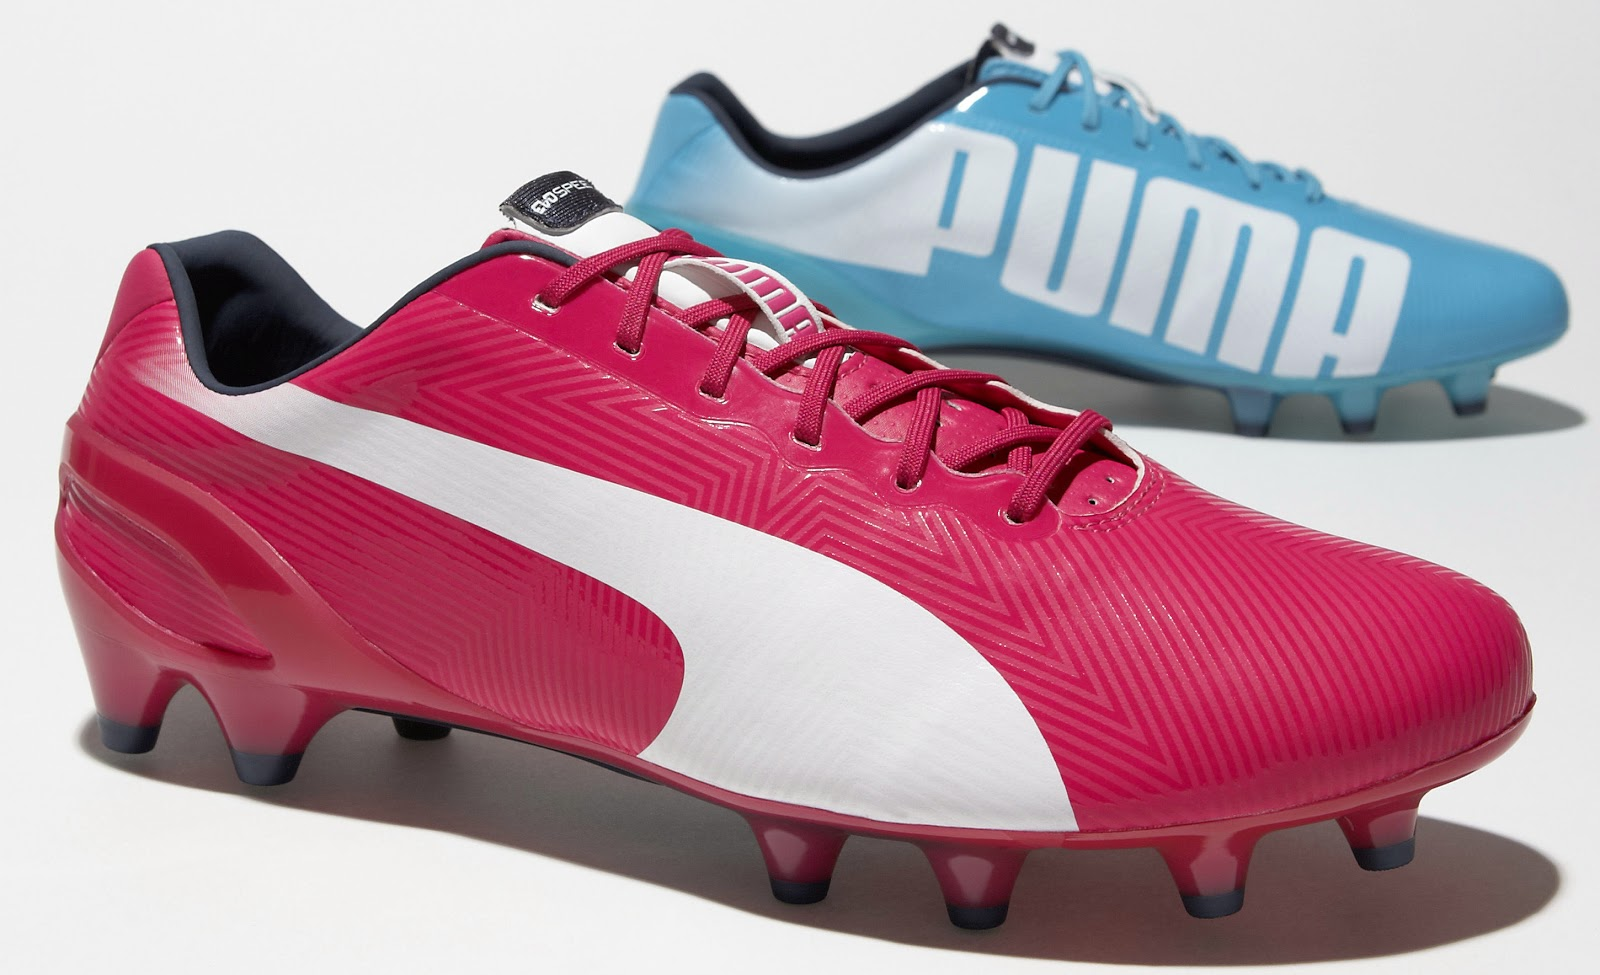 puma evospeed 12 tricks 2014 world cup boots